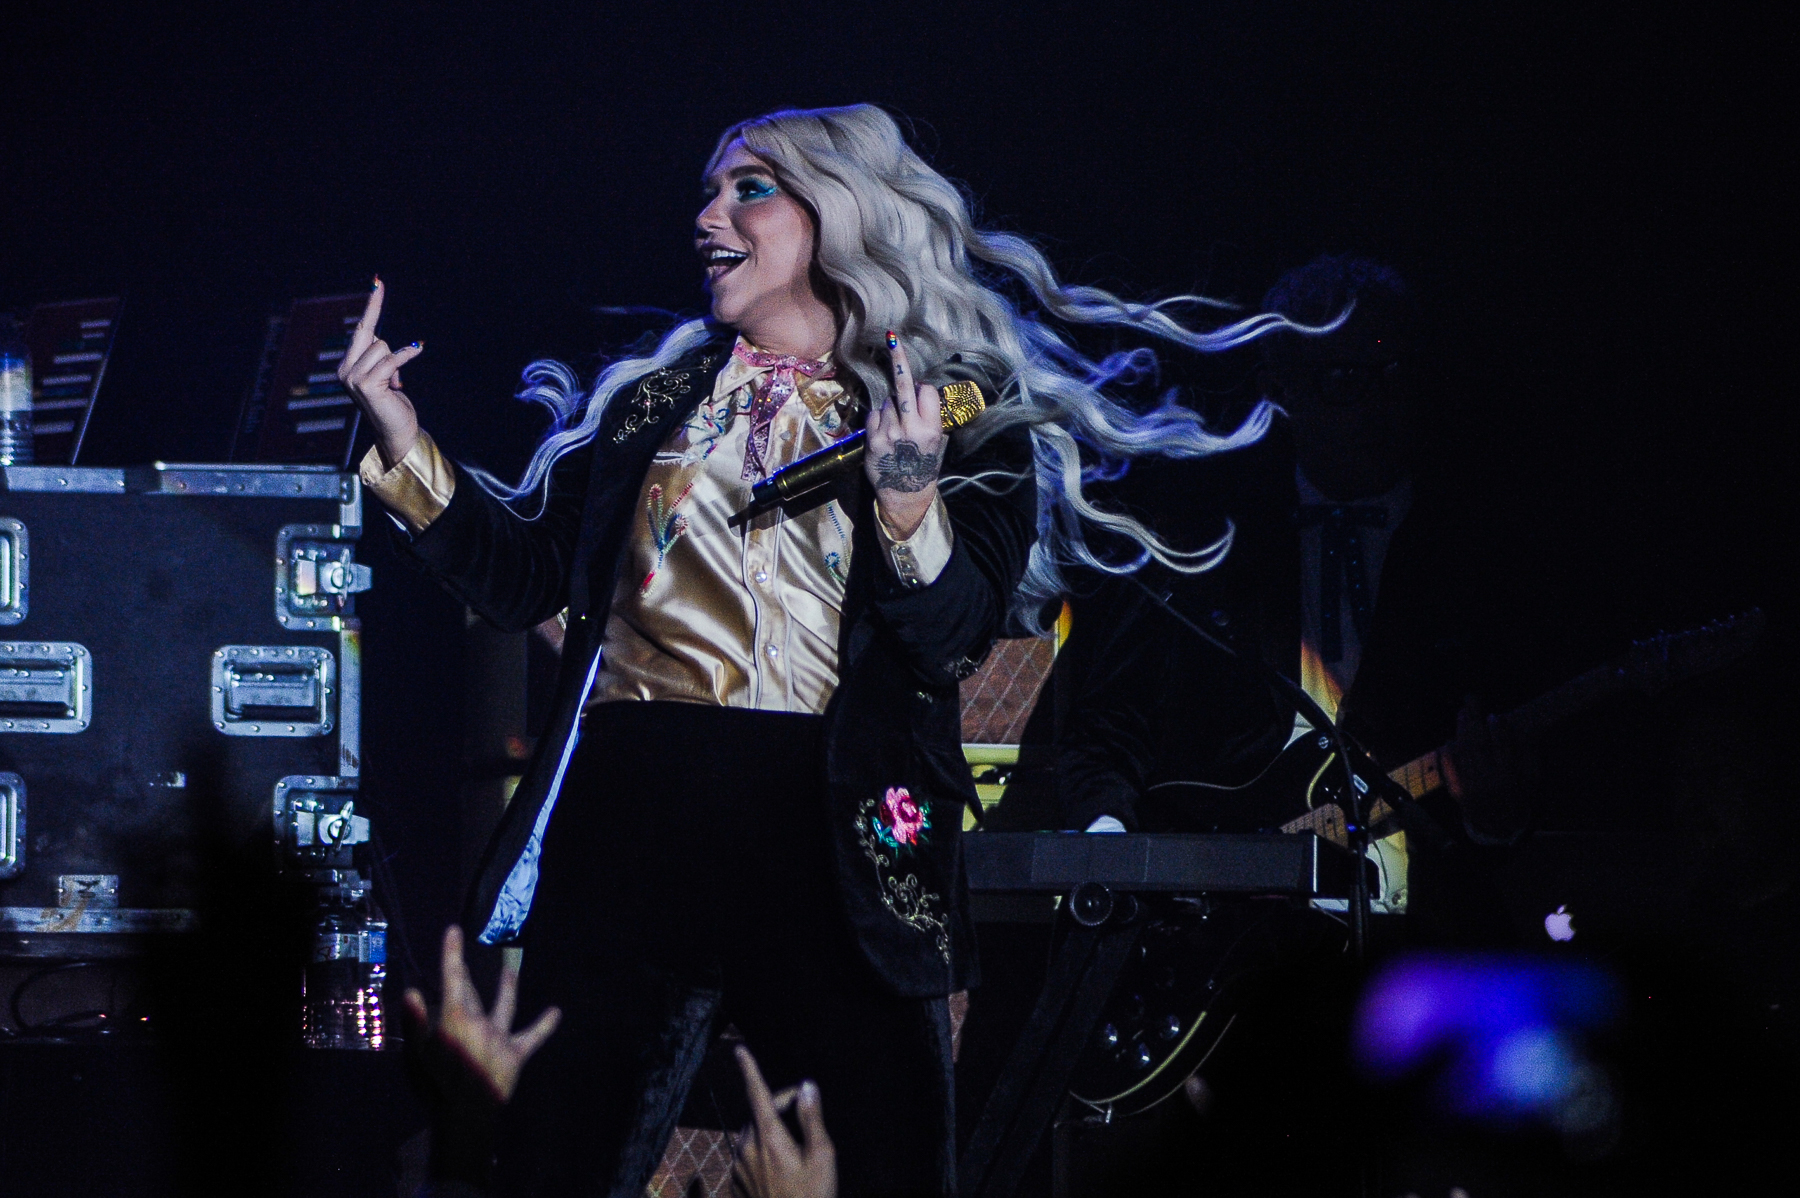 ​Judge Rules Kesha's Texts to Lady Gaga Defamatory